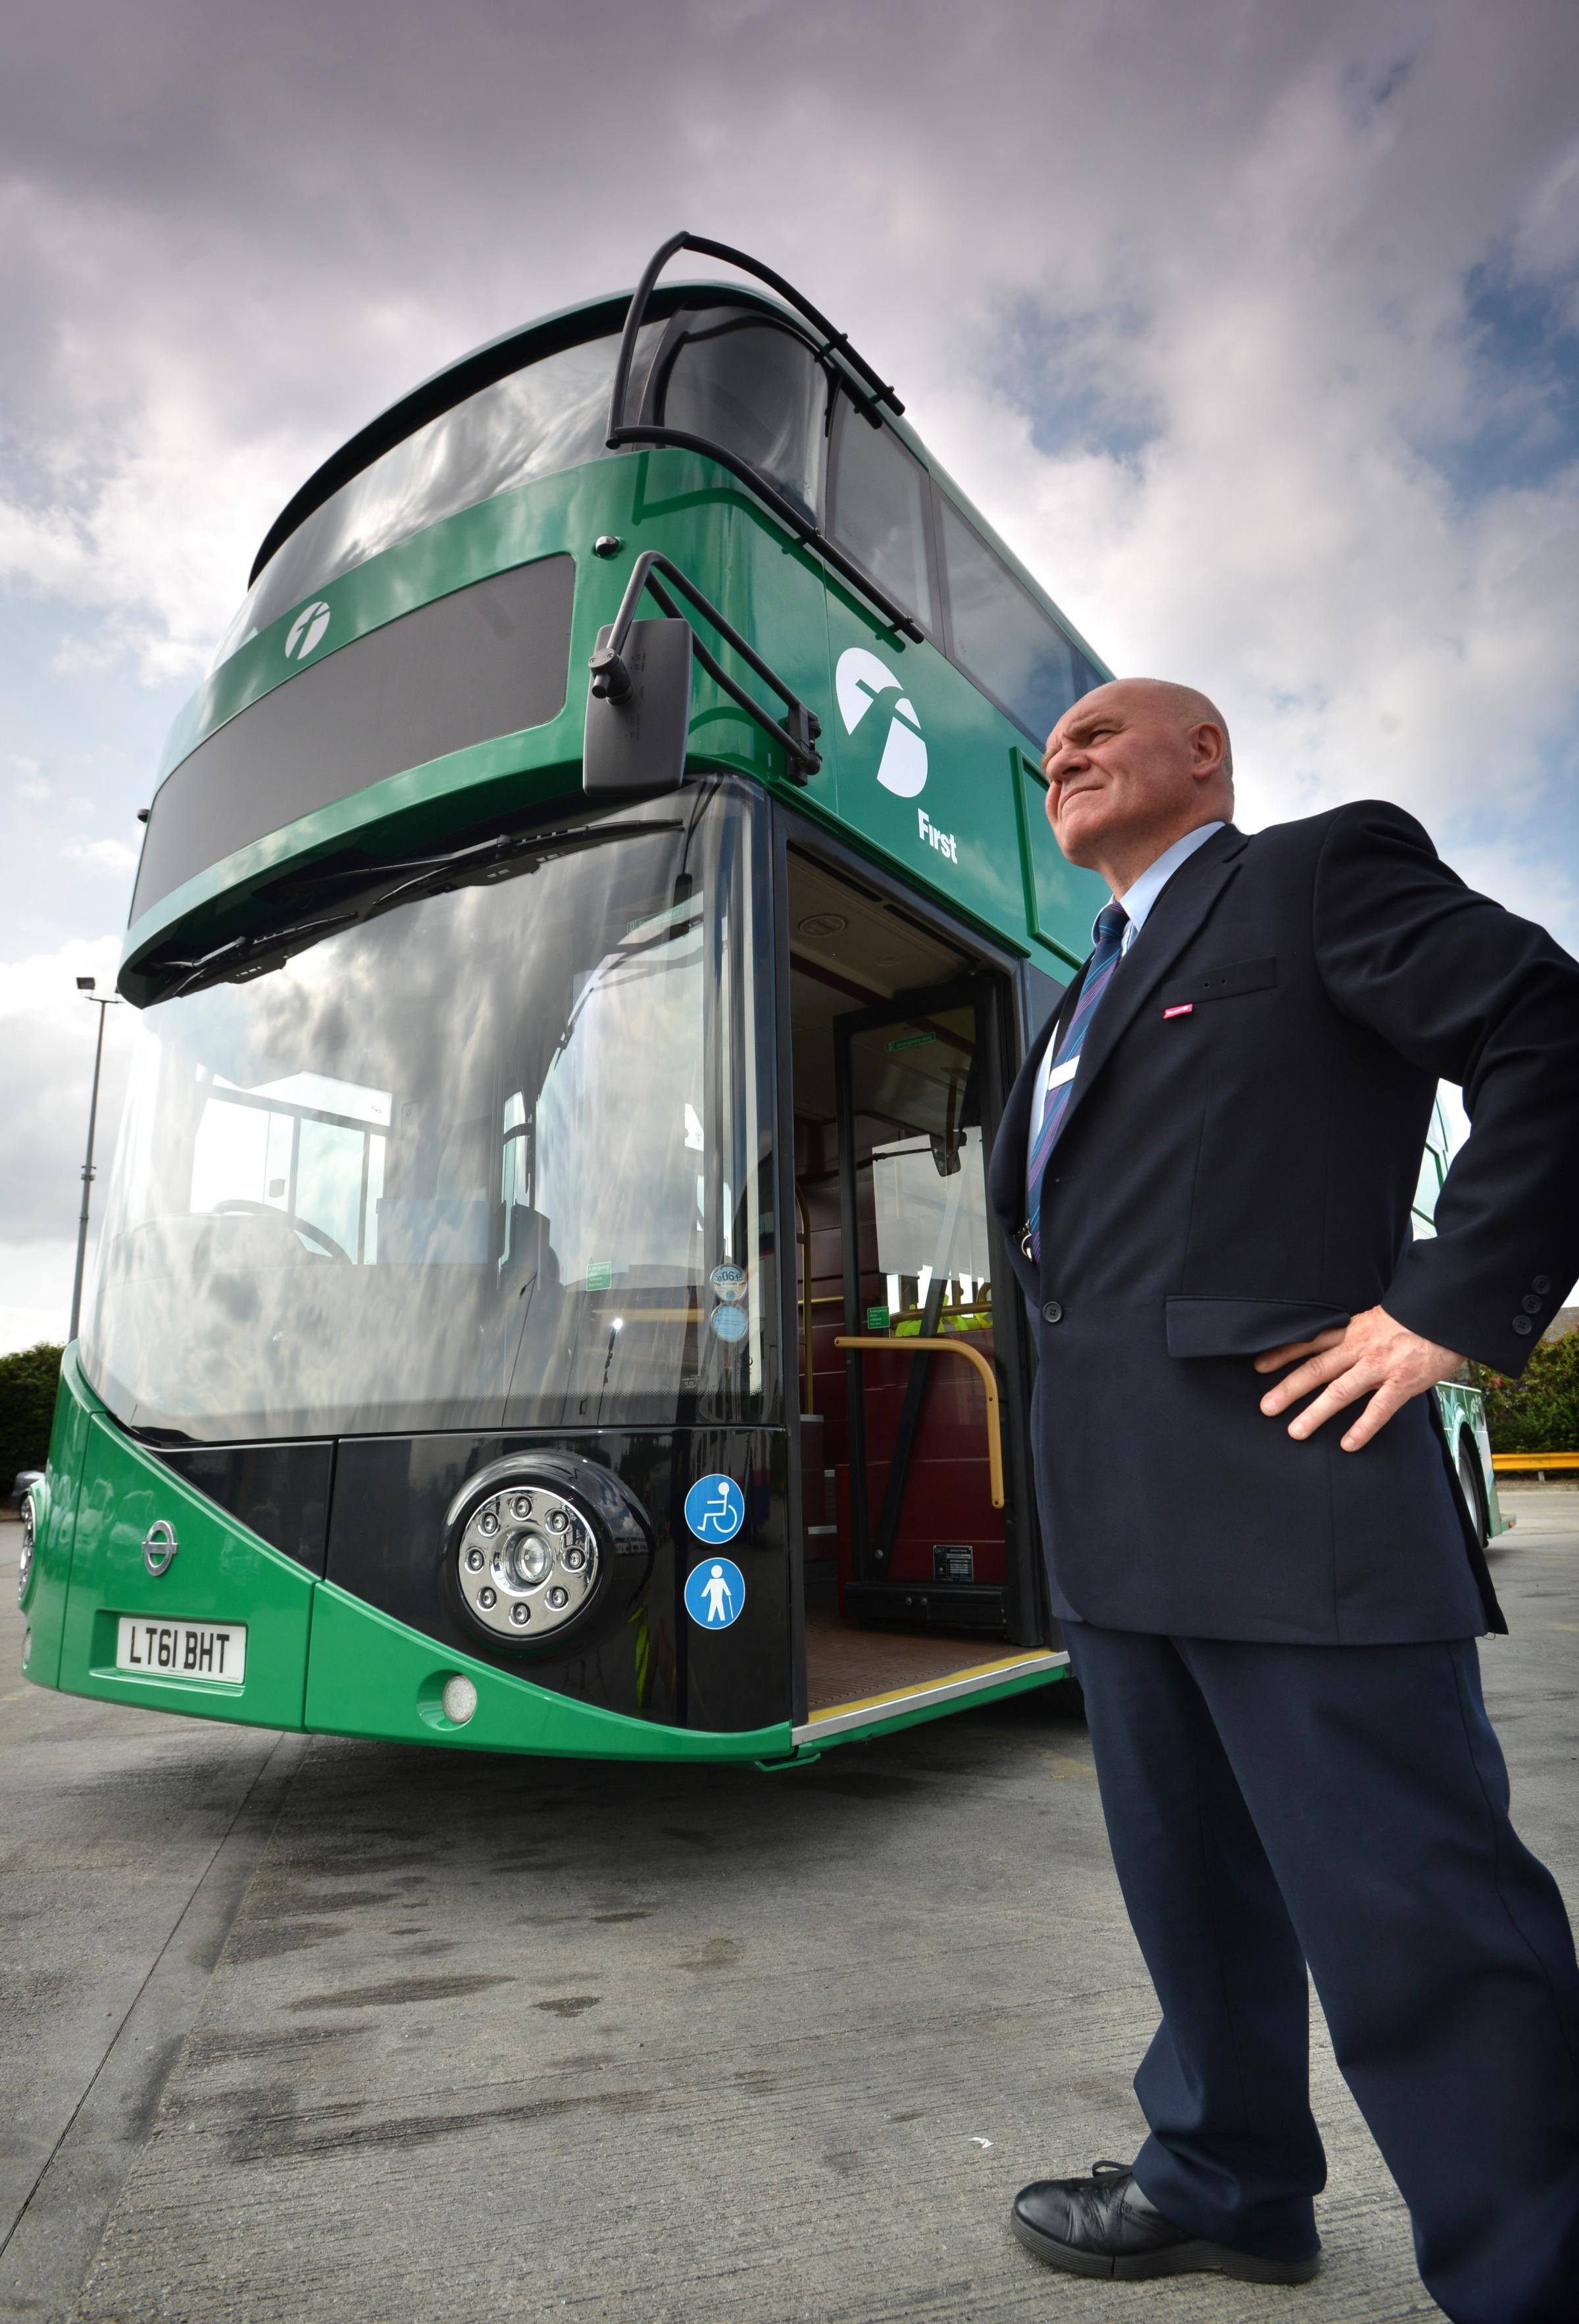 VIDEO: Public asked if they want new-style bus in Bradford